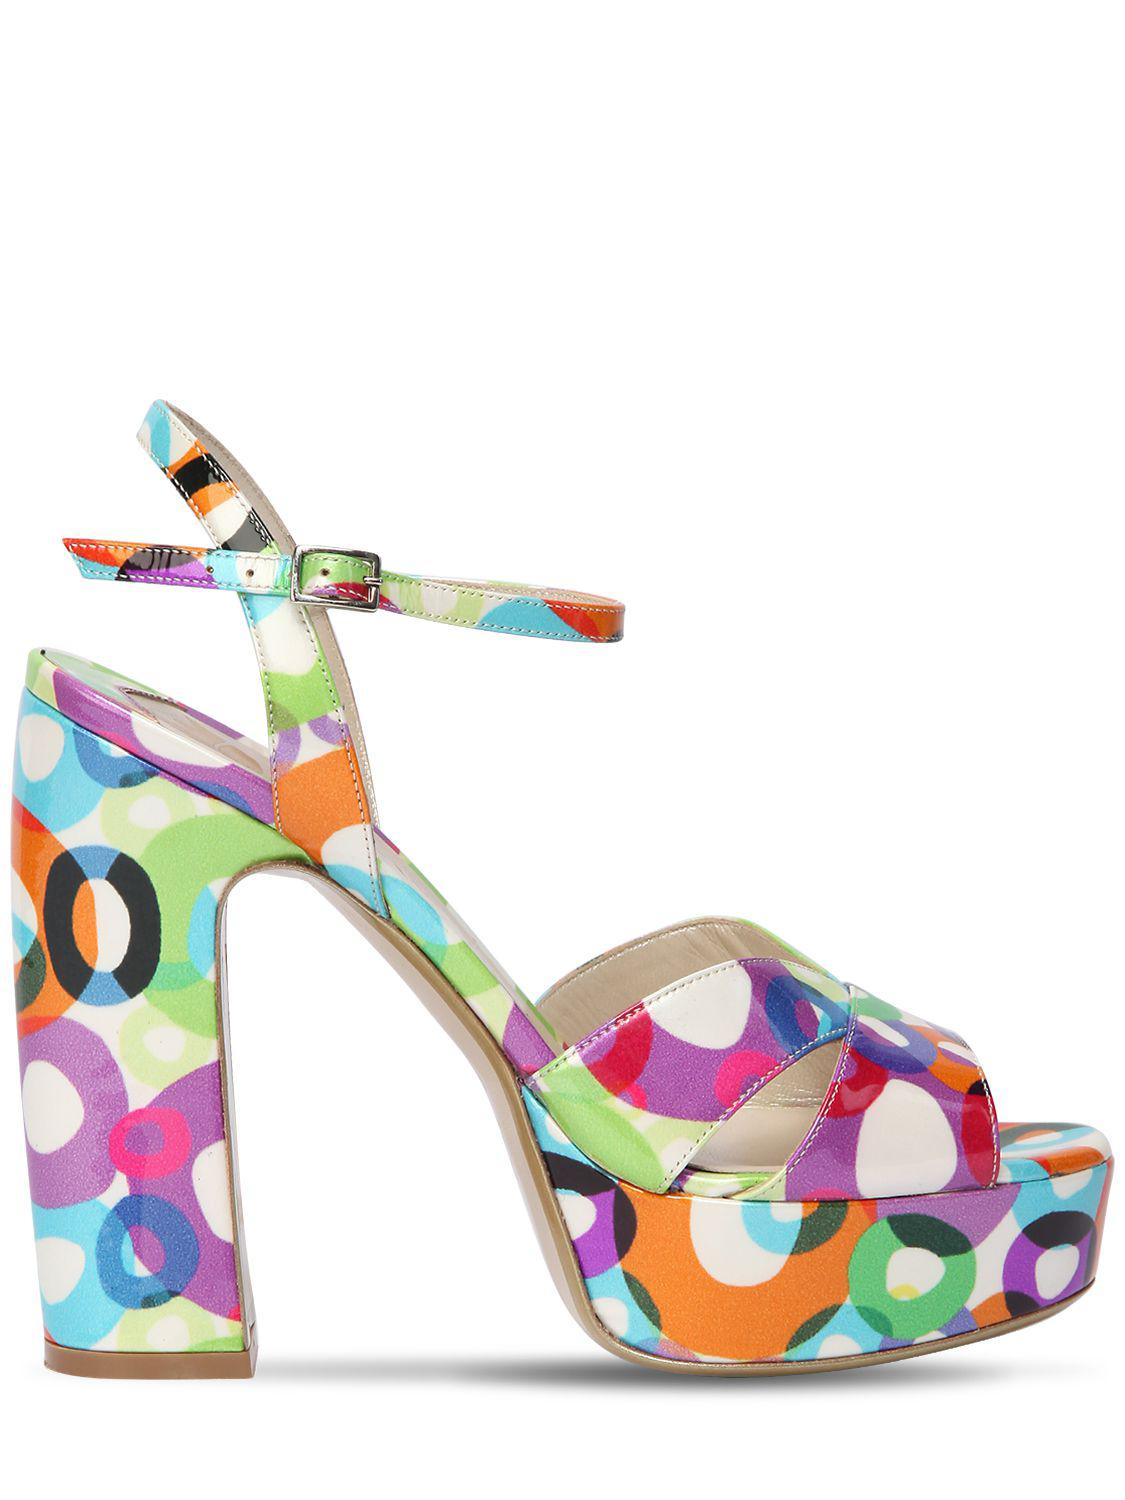 Ernesto Esposito 125MM PRINTED PATENT LEATHER SANDALS